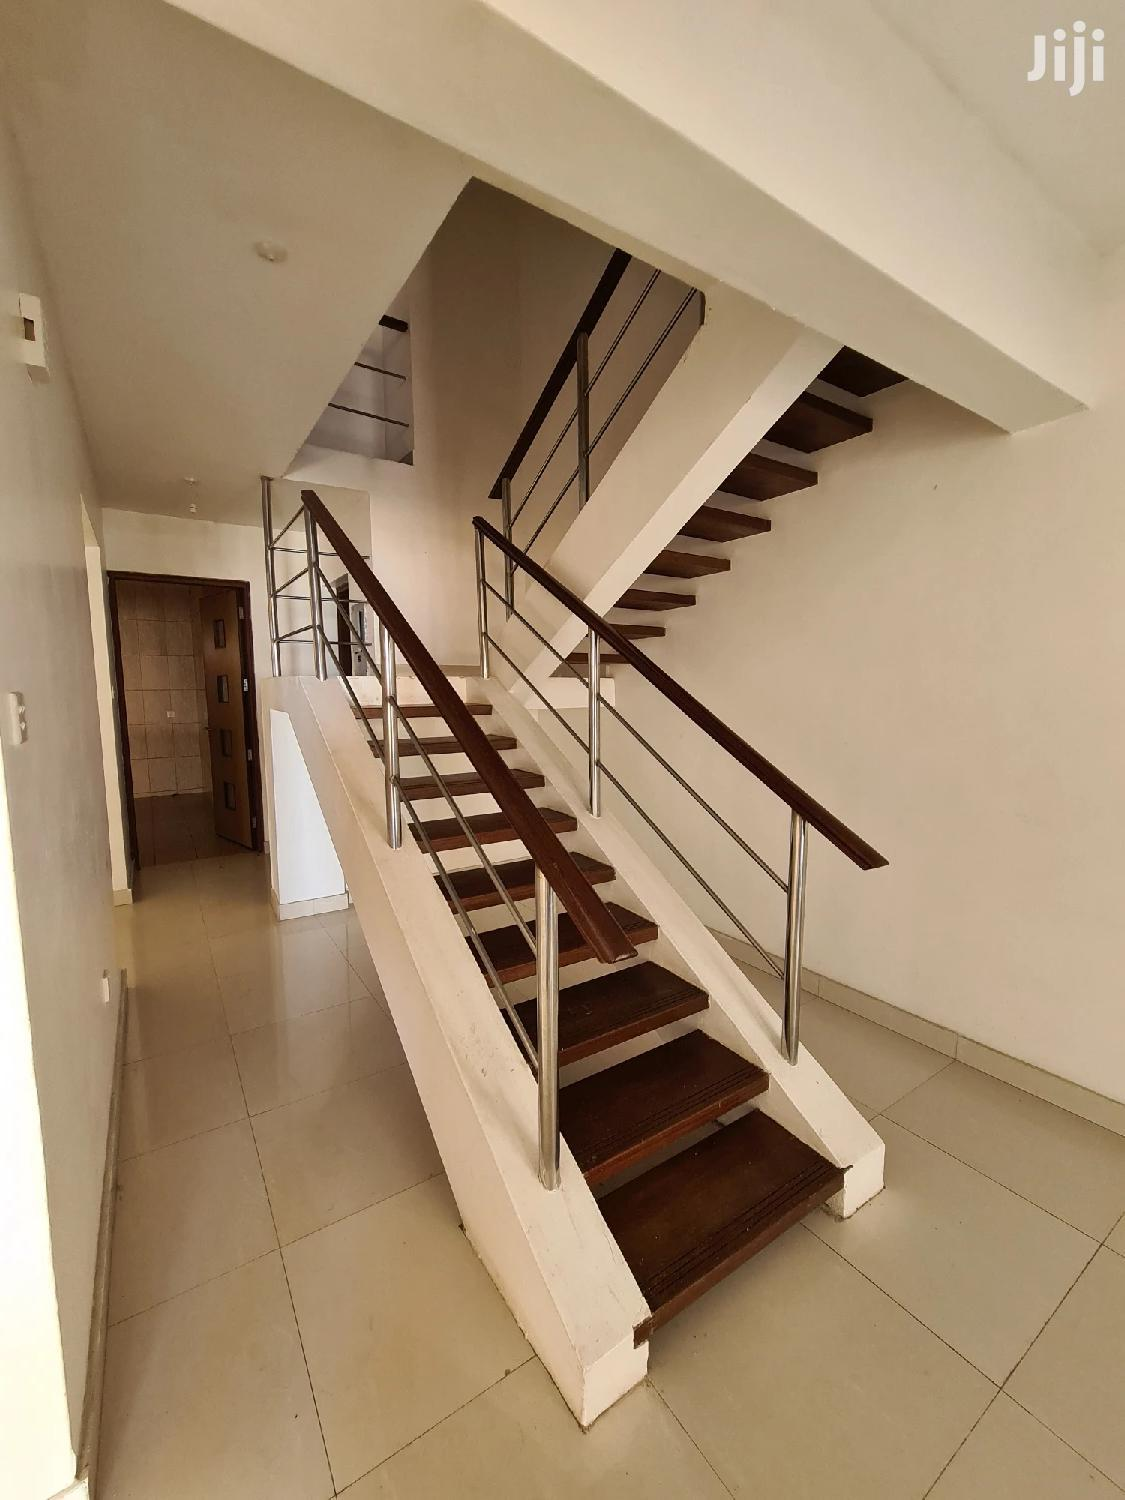 Ultra Modern 3 Bedroom Duplex For Rent In Nyali. | Houses & Apartments For Rent for sale in Nyali, Mombasa, Kenya